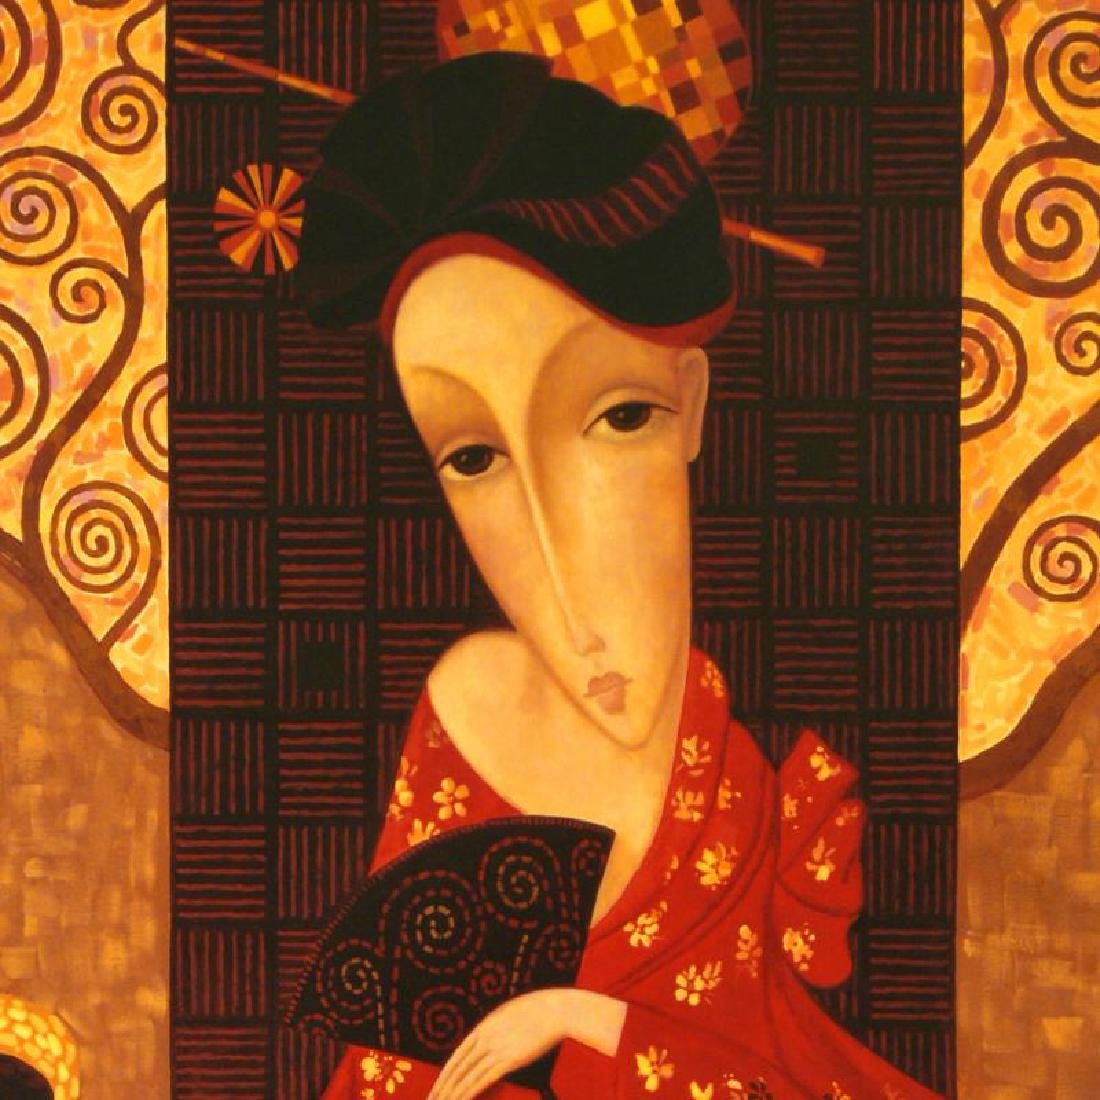 Geisha In Red by Smirnov (1953-2006) - 2